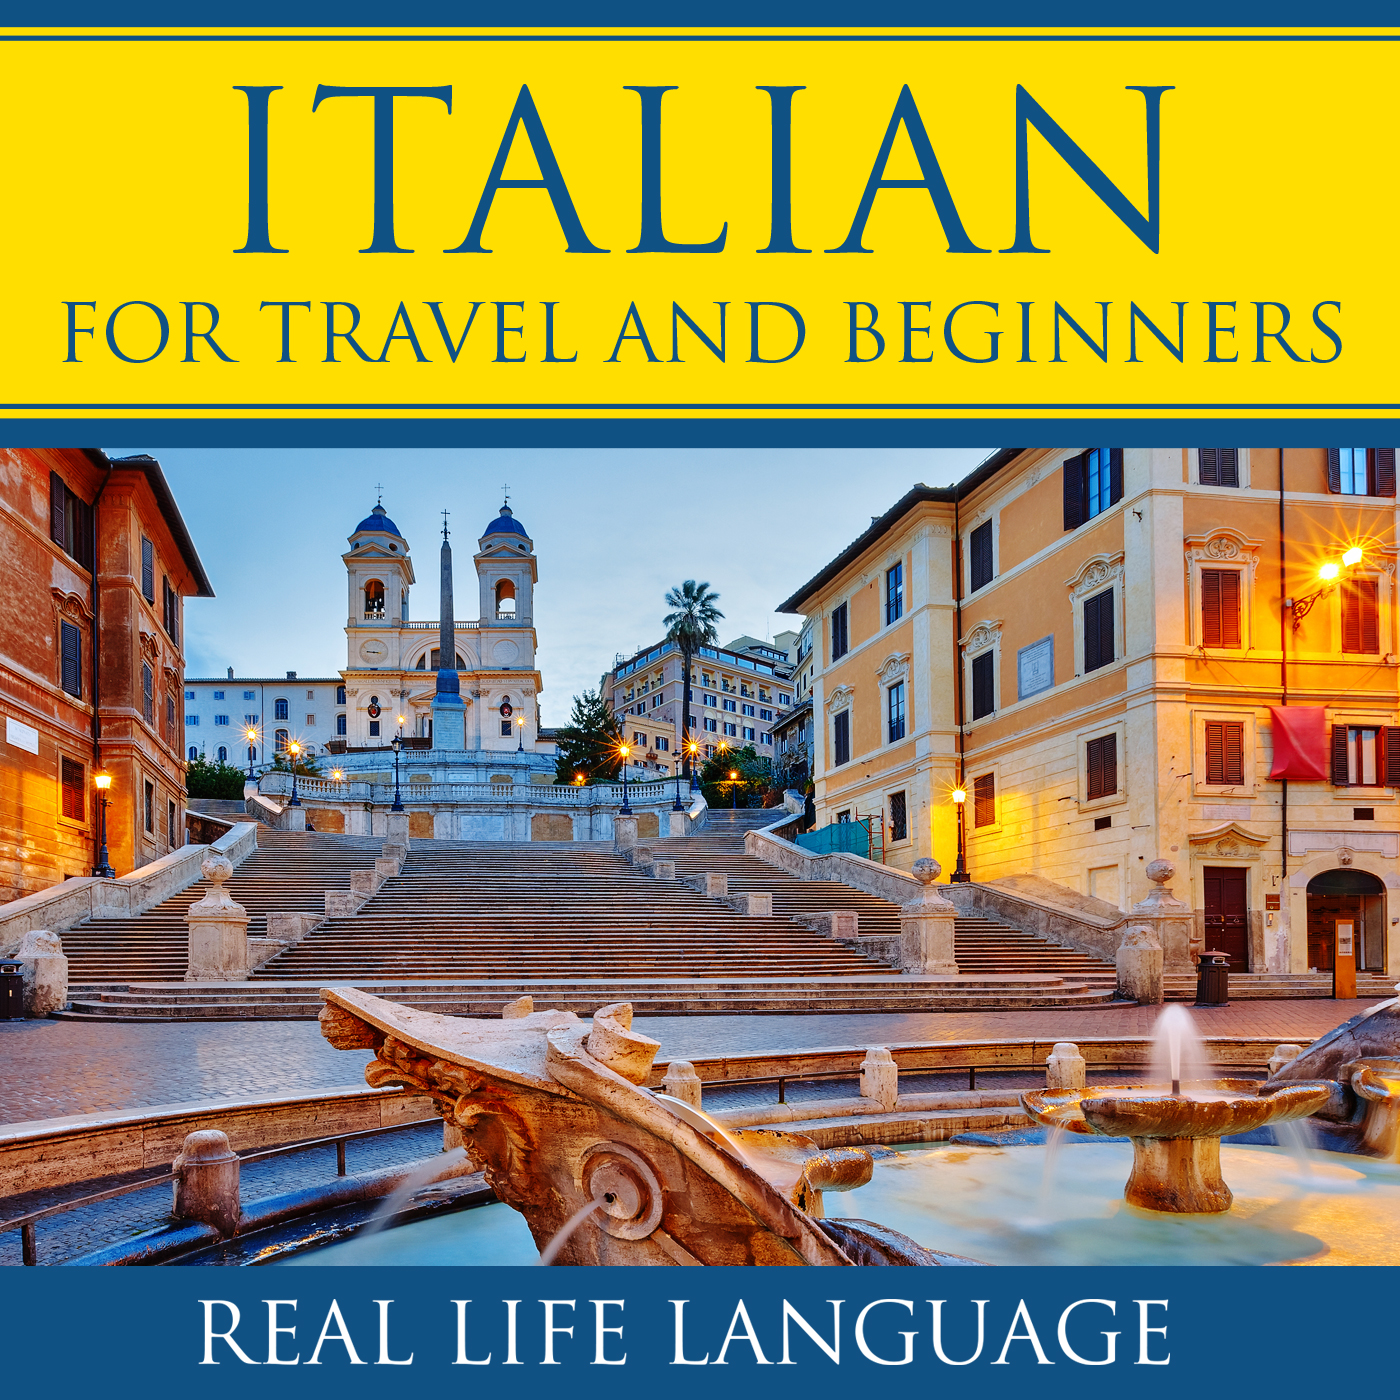 Italian for Travel and Beginners – Real Life Language